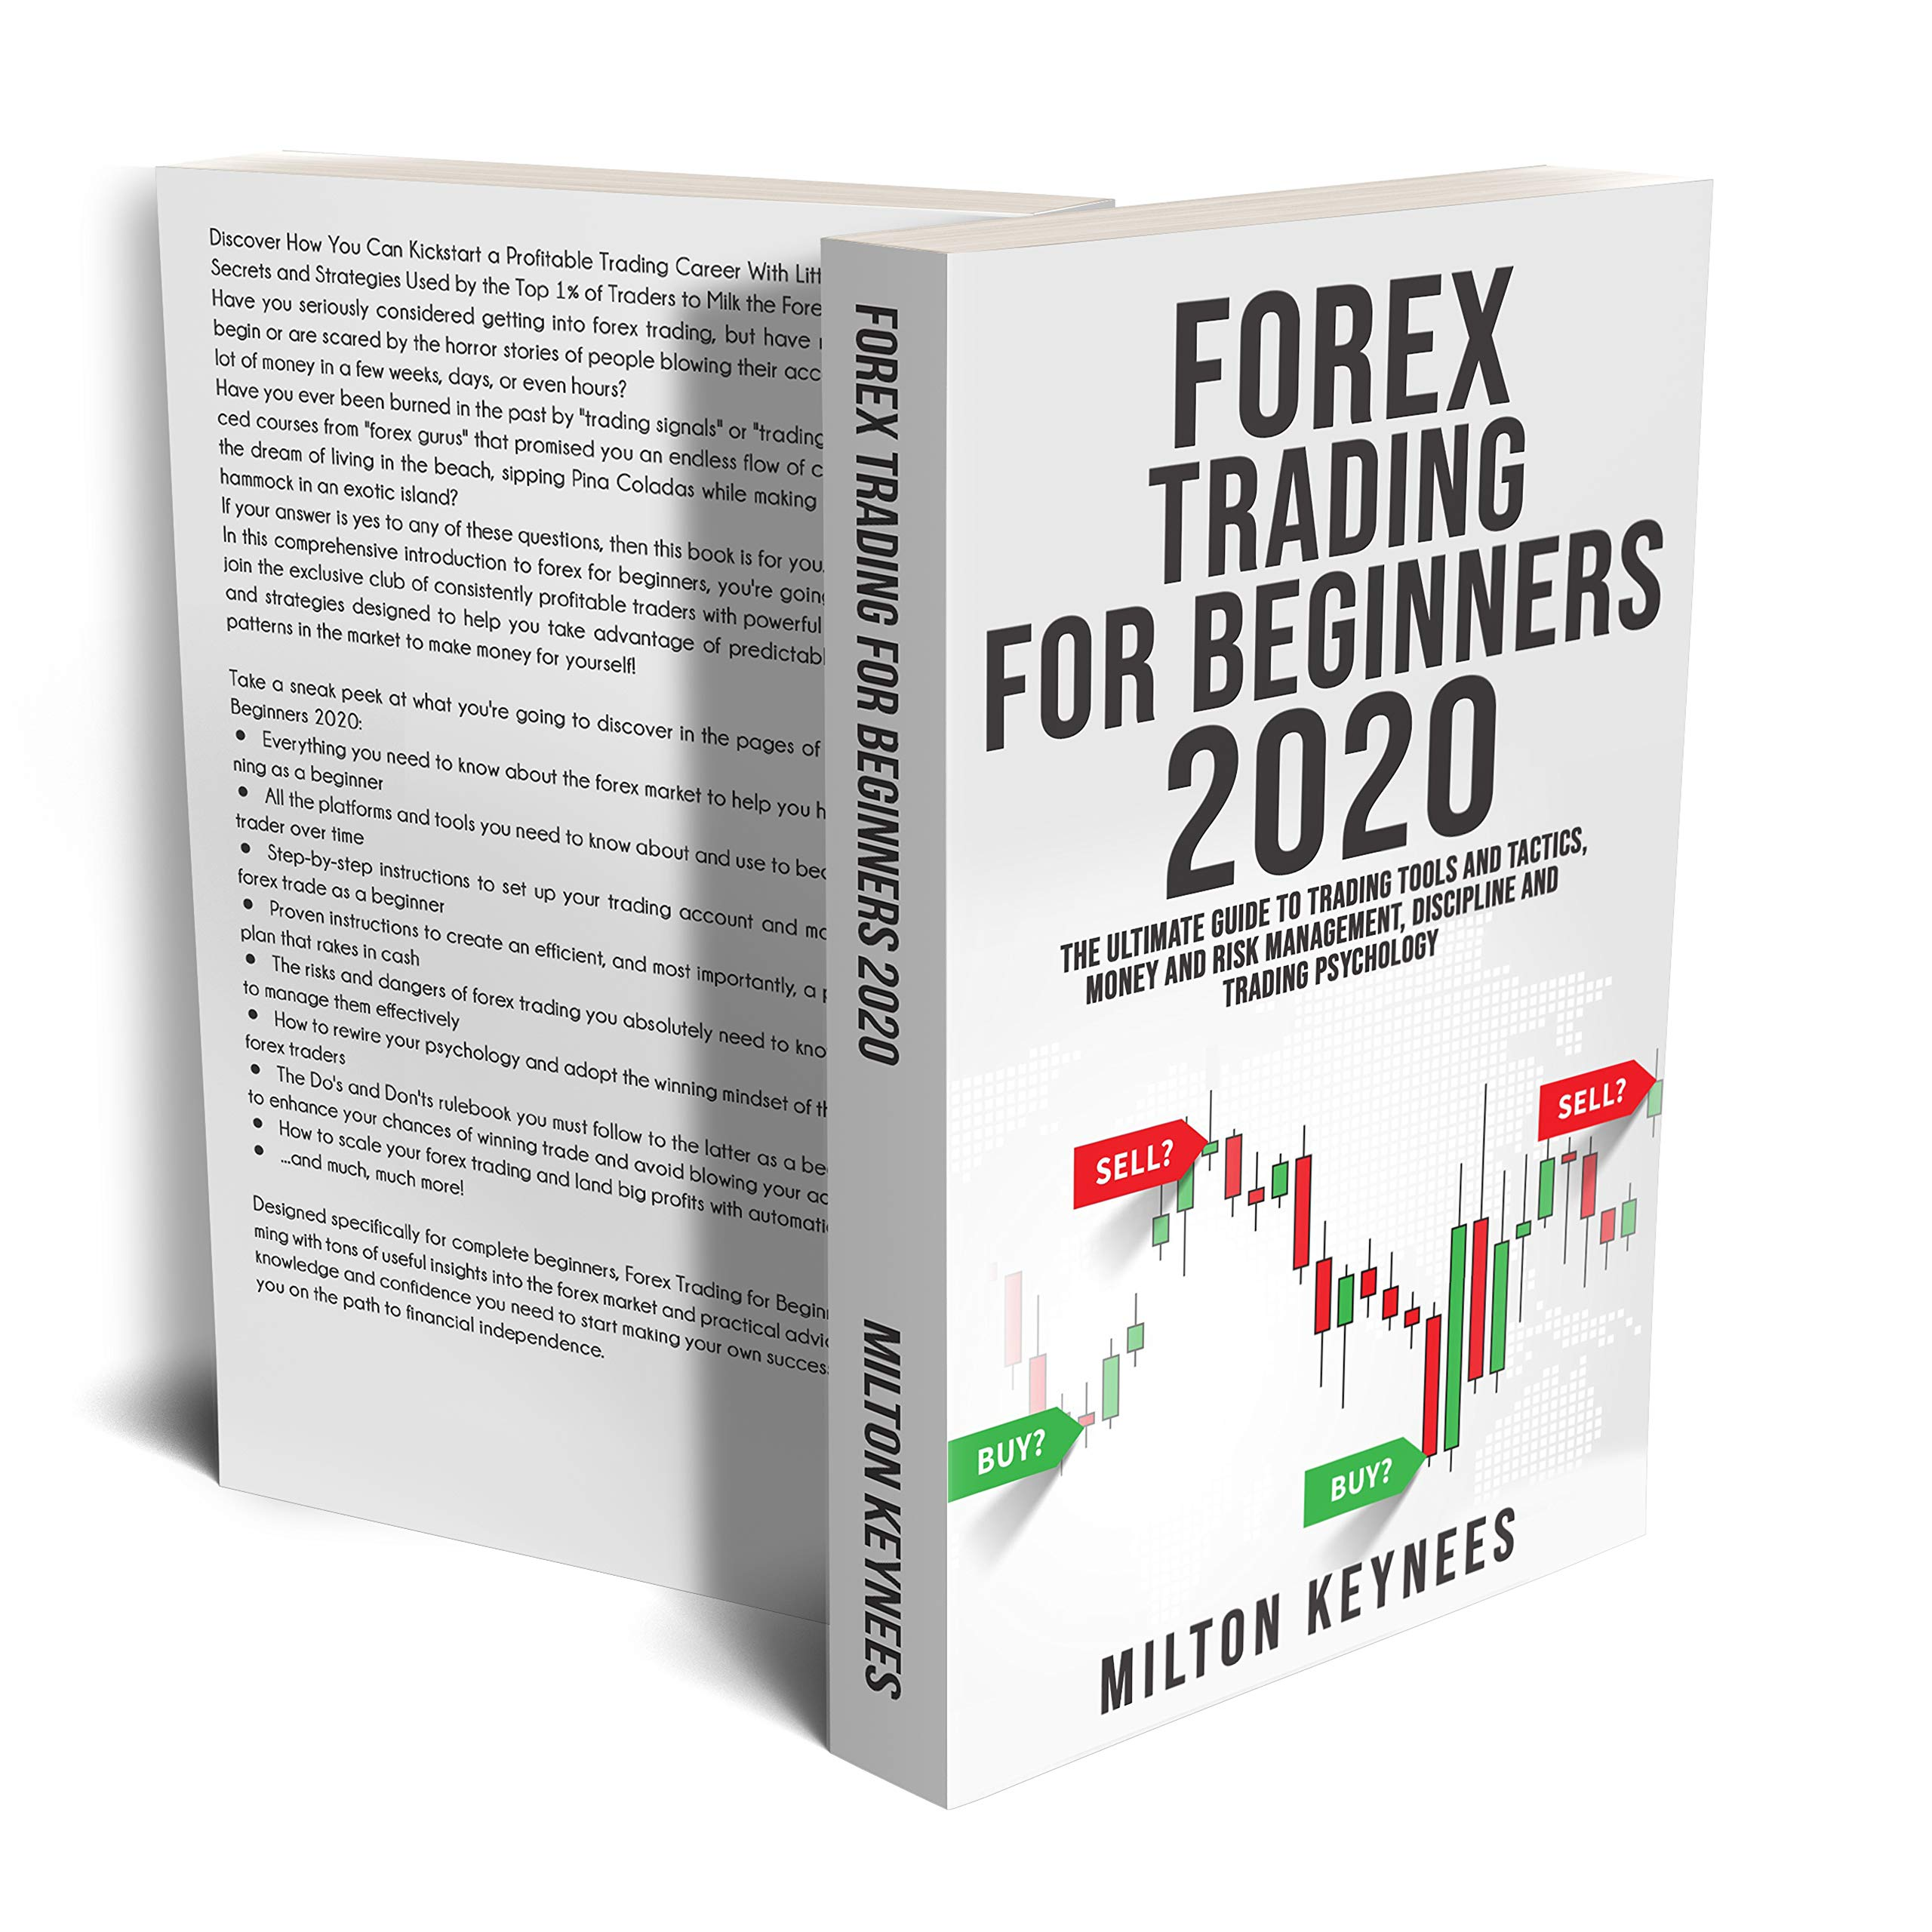 FOREX TRADING FOR BEGINNERS 2020: The Ultimate Guide to Trading Tools and Tactics, Money and Risk Management, Discipline and Trading Psychology